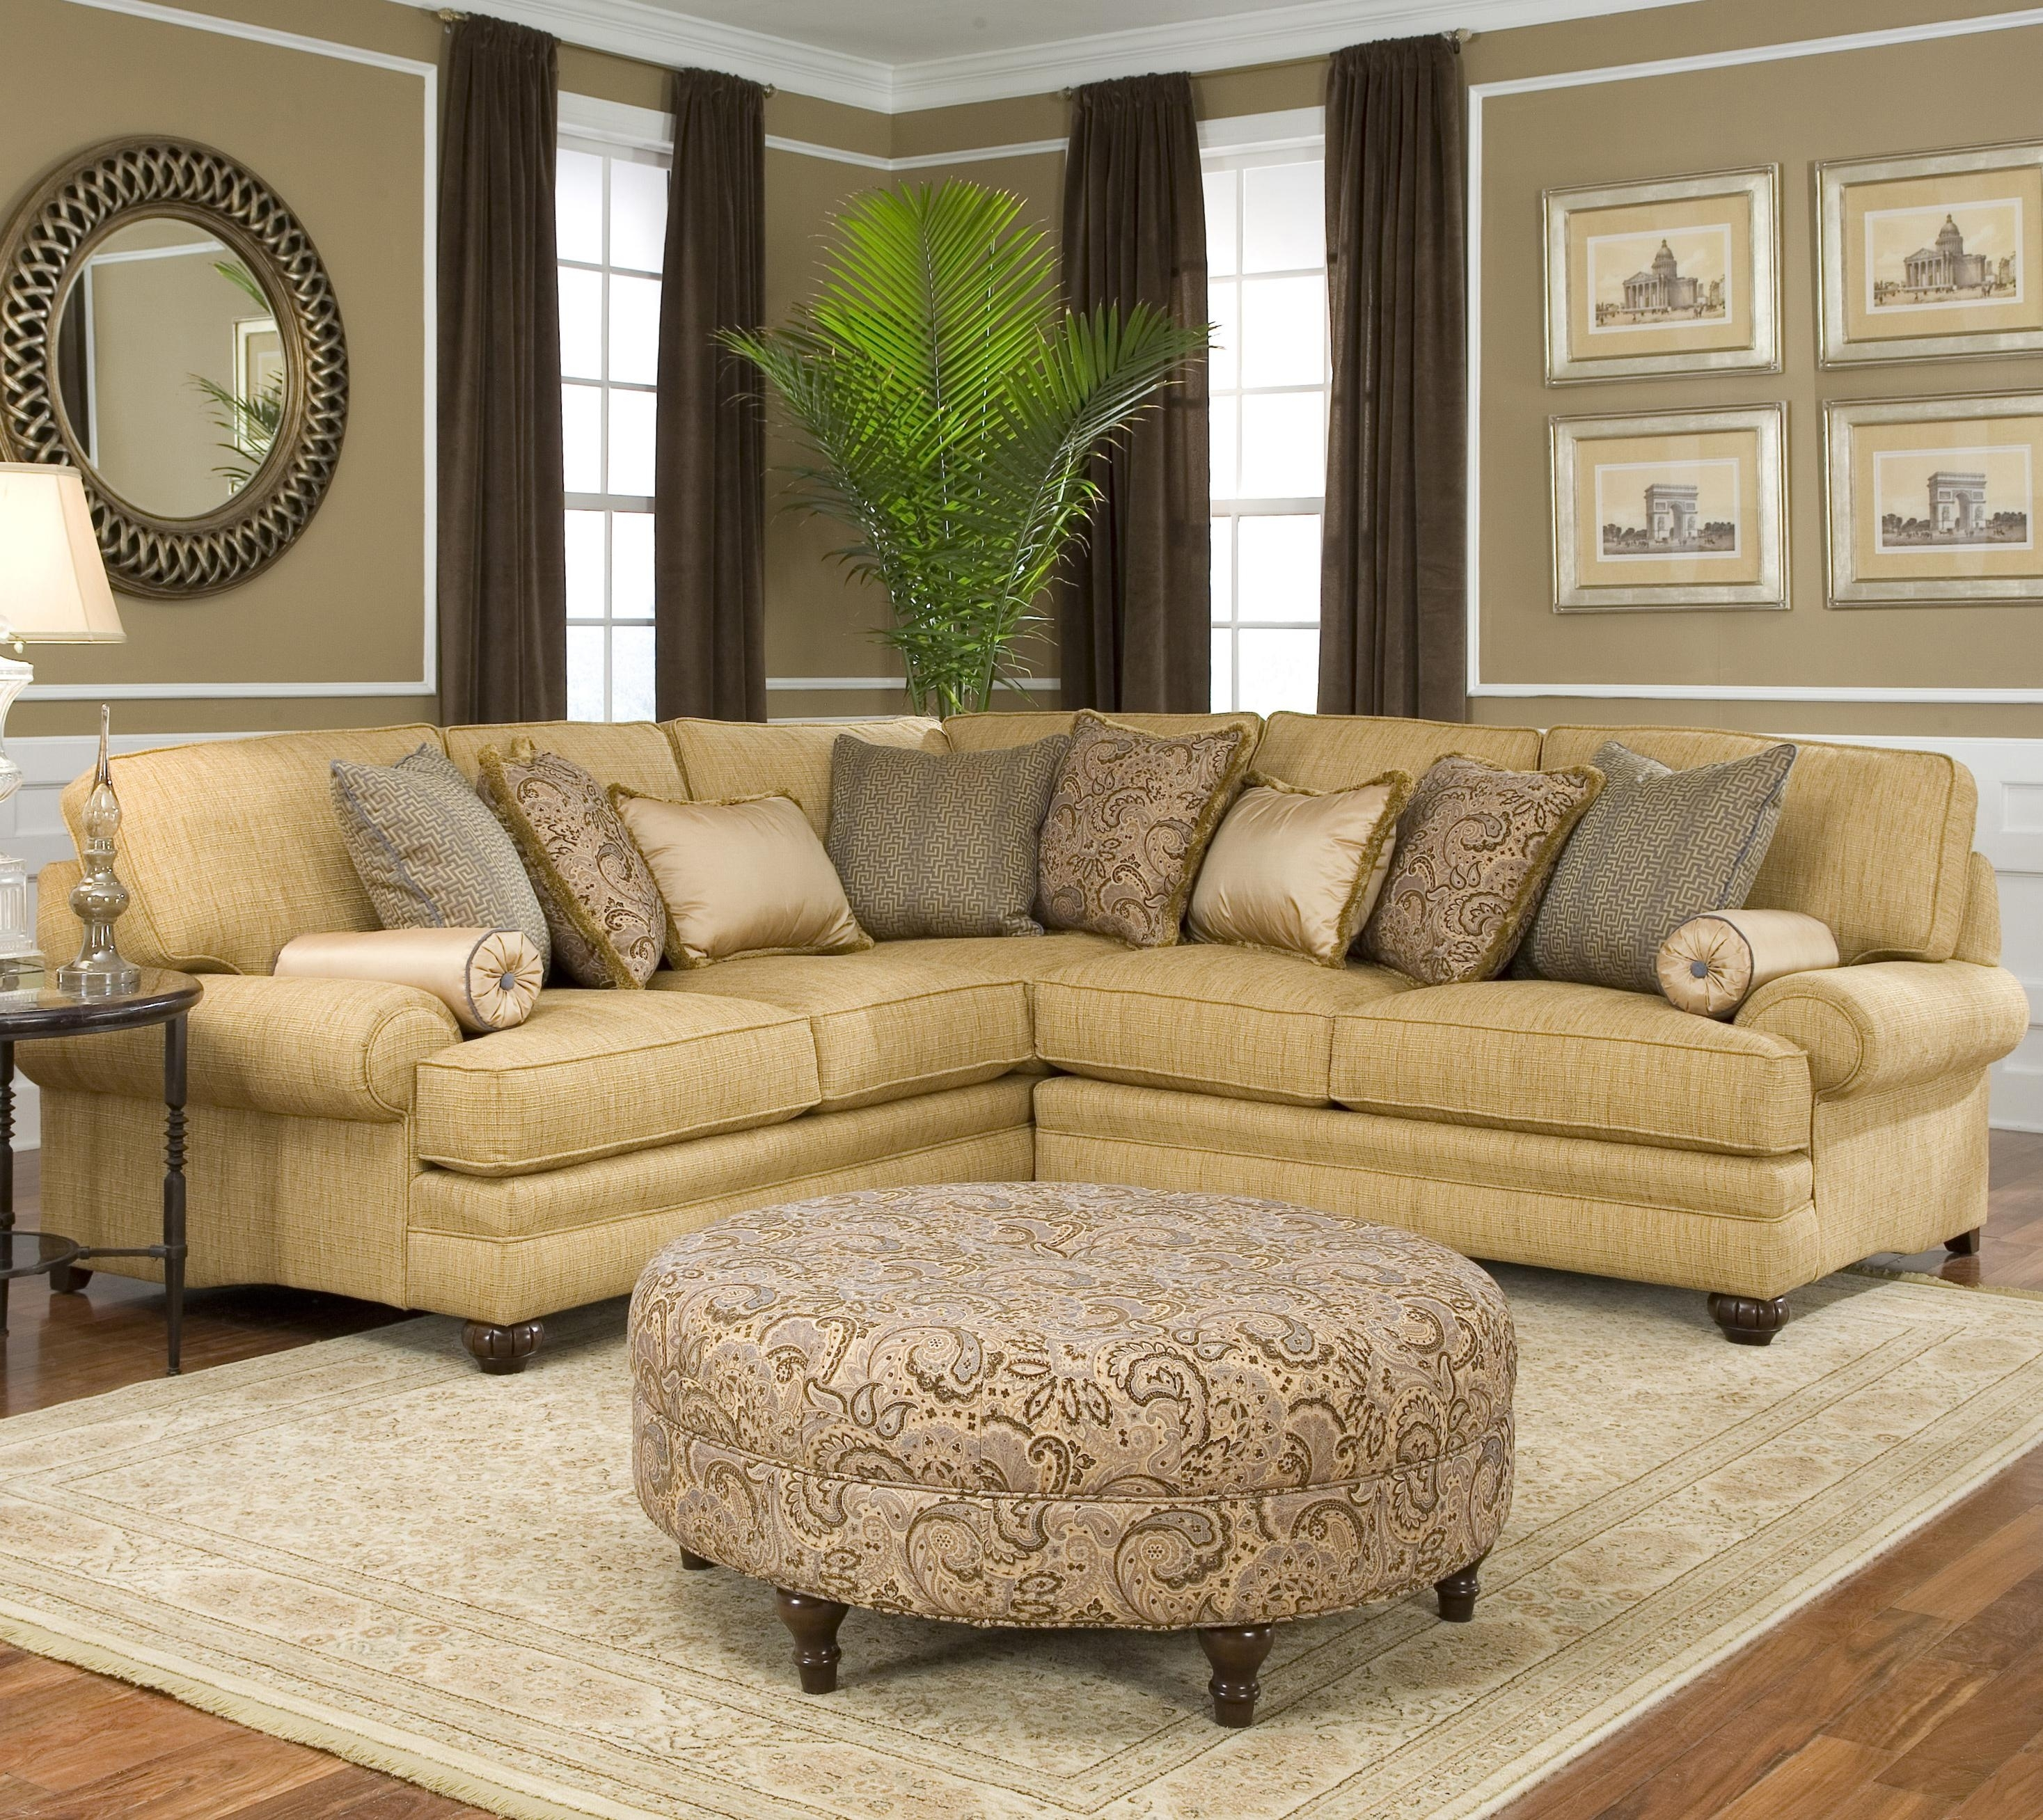 Smith Brothers 376 Traditional Styled Corner Sectional Sofa With Rounded Corner Sectional Sofas (View 10 of 10)